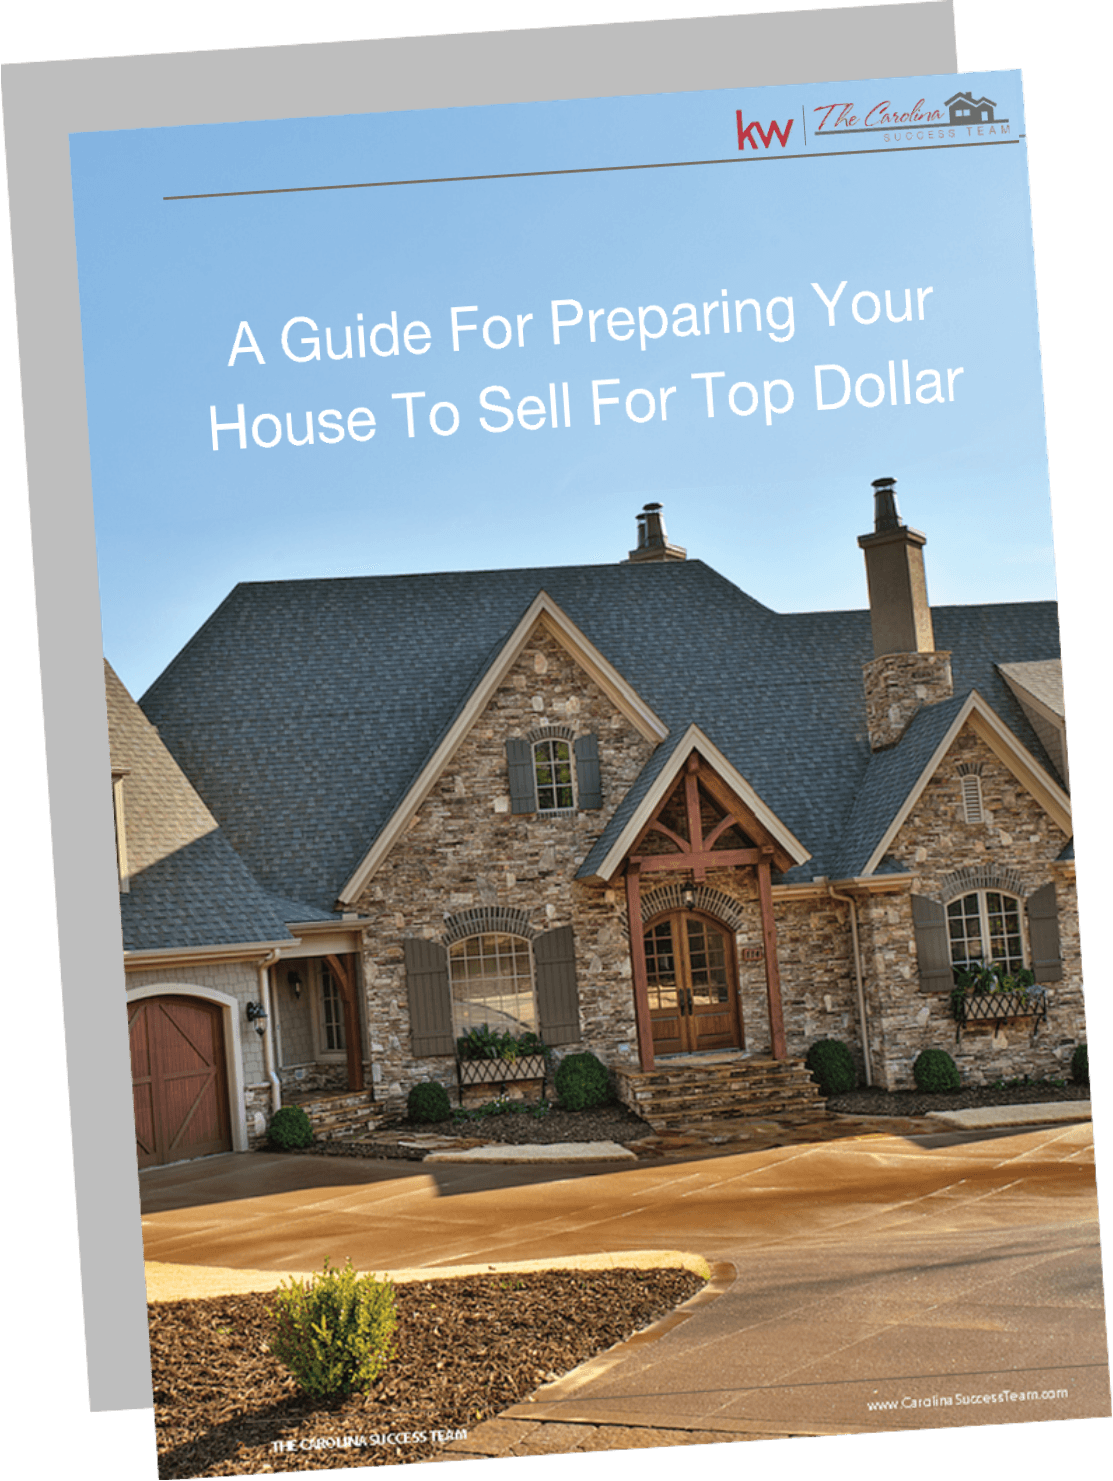 Carolina Success Teams Guide to Preparing Your House Ready to Sell